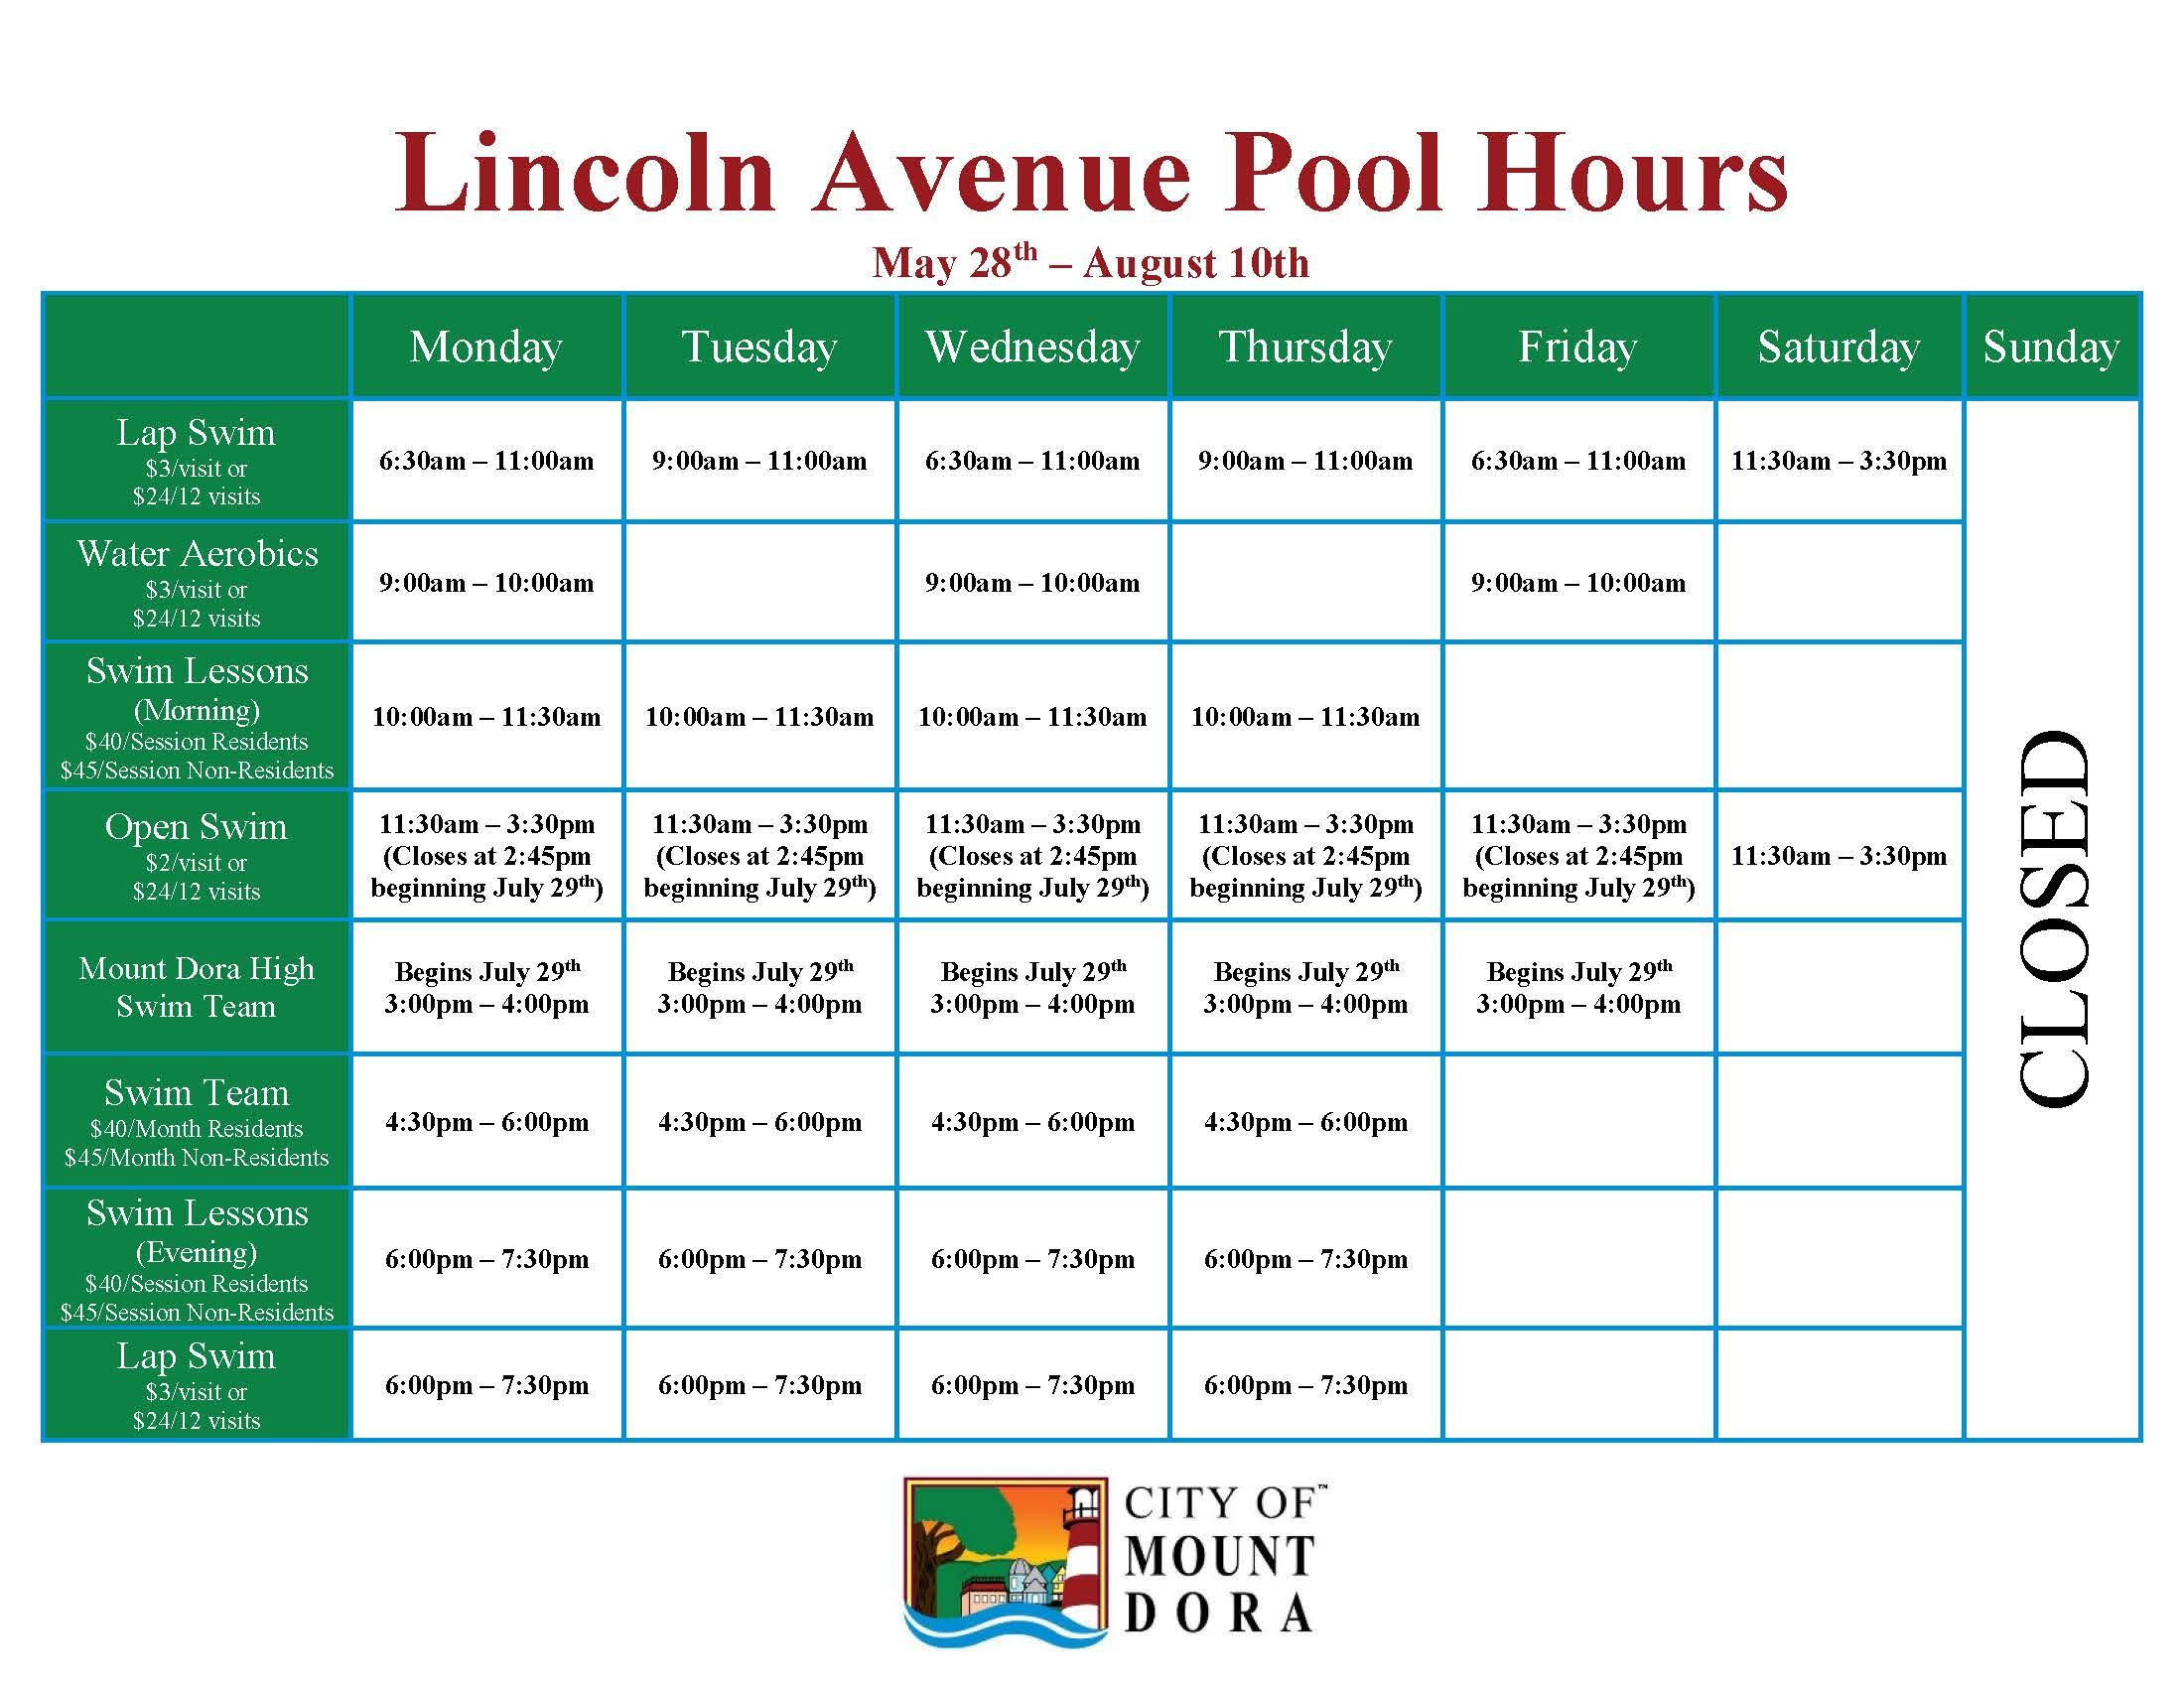 Mount Dora Community Pool Programs Schedule and Prices from May 27th, 2019 through August 10th, 2019